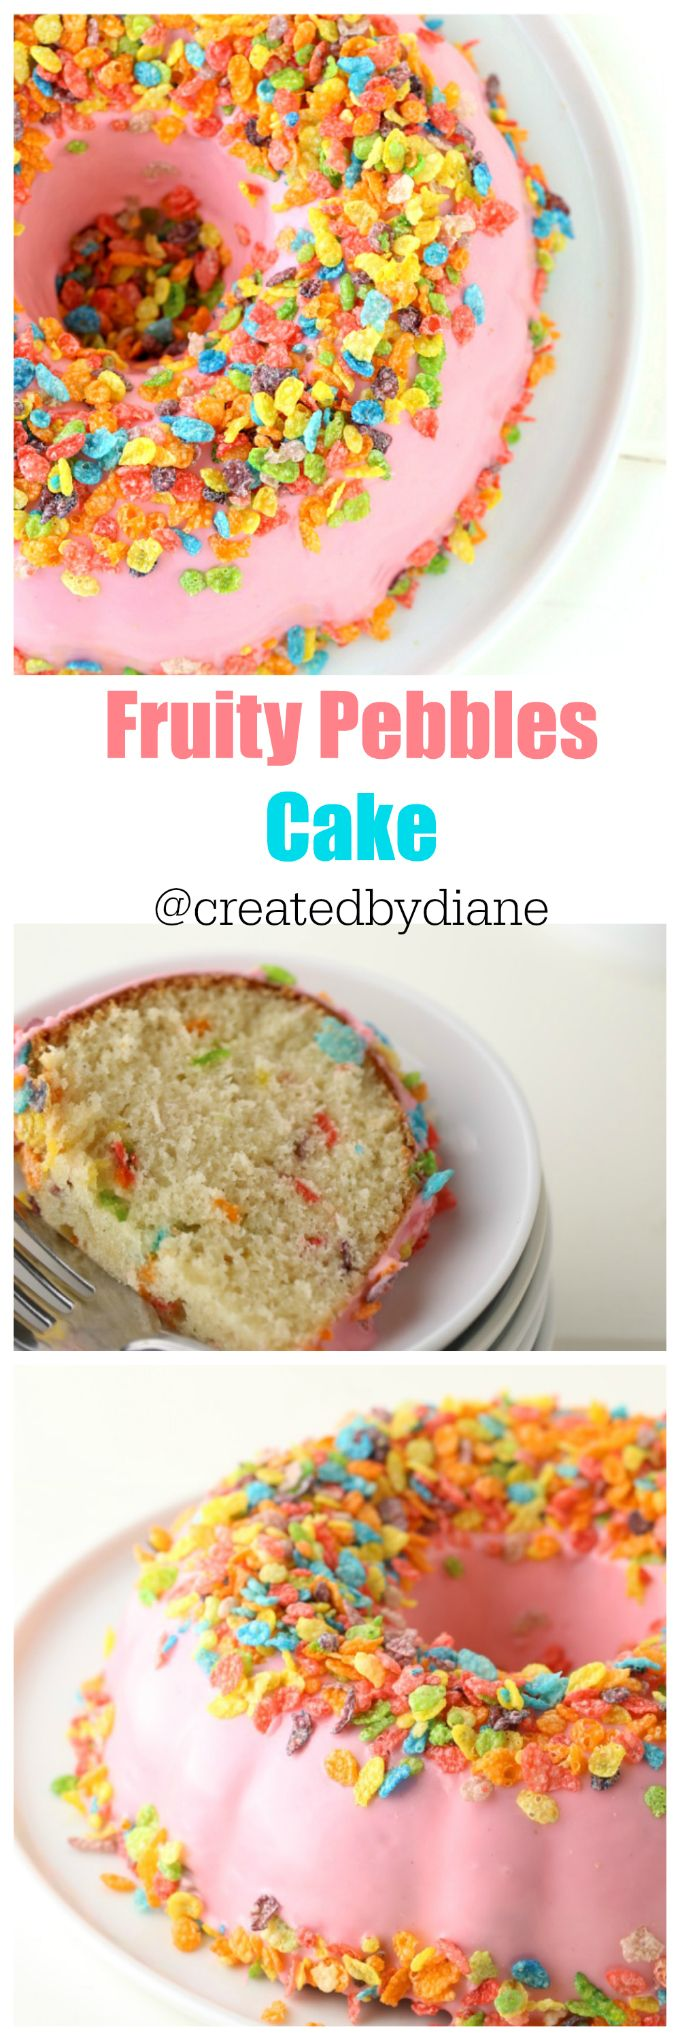 fruity-pebbles-cereal-cake-createdbydiane